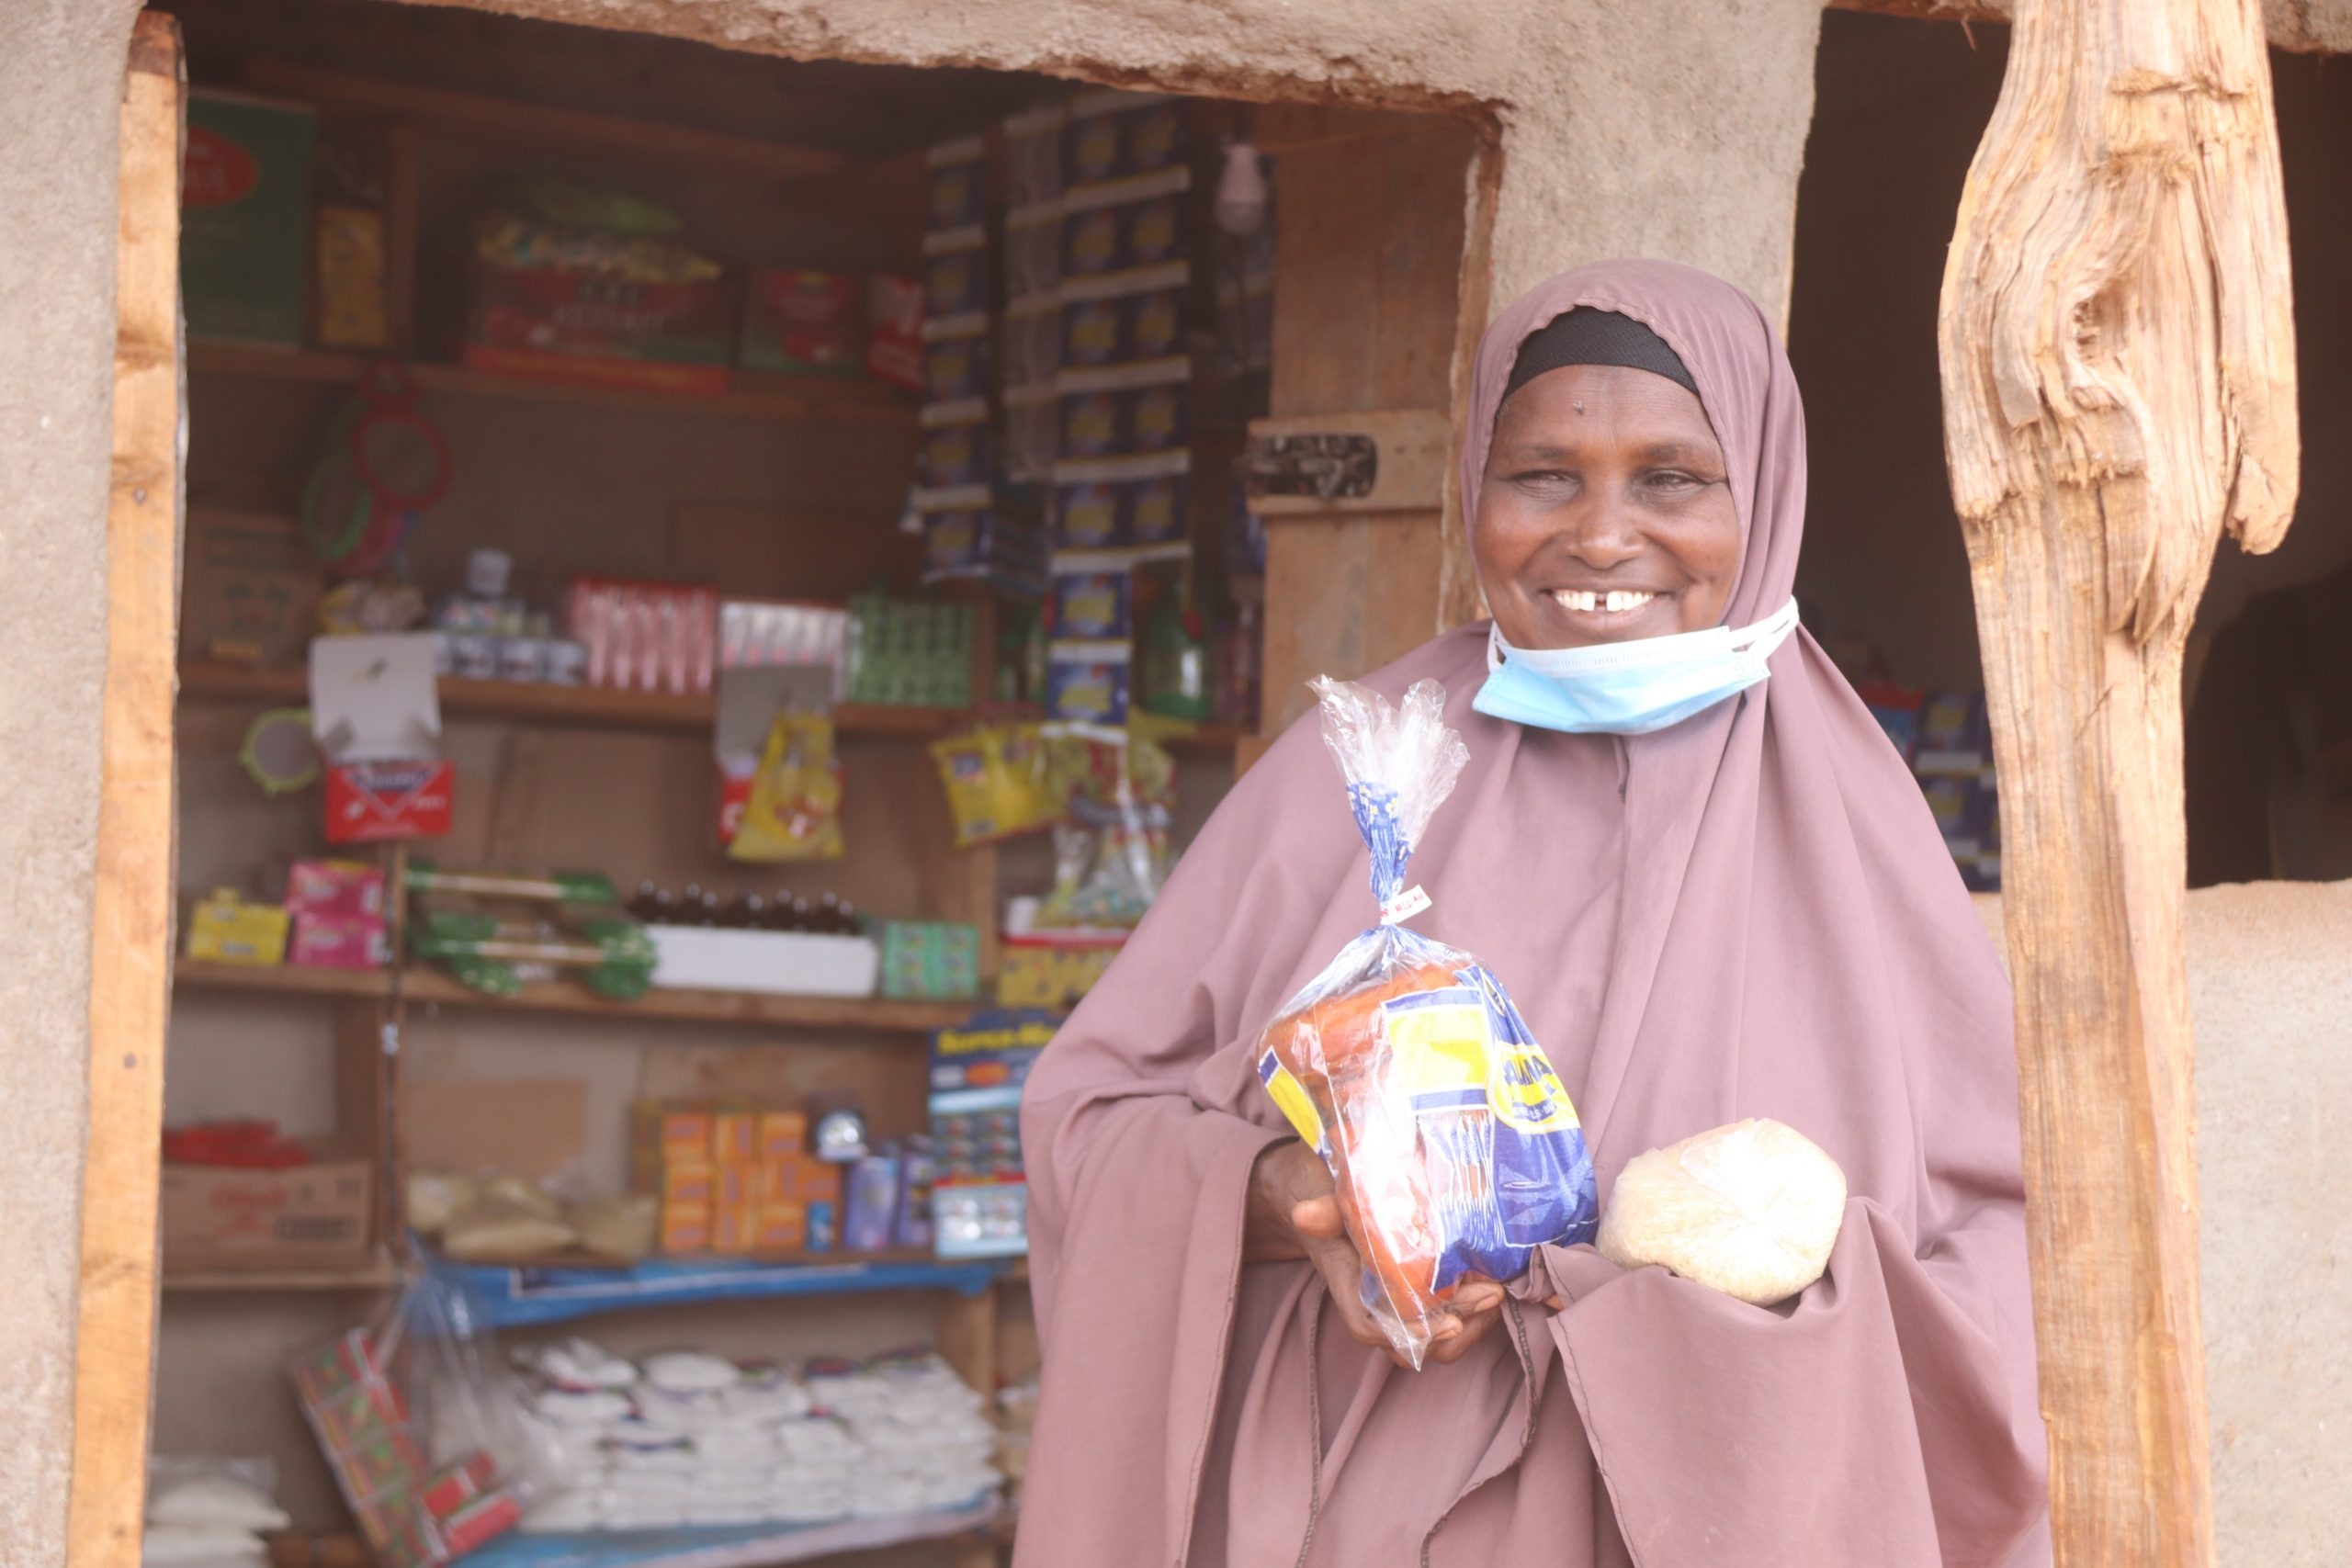 Photo/PACIDA: Halima Adan standing in front of her provision shop. She was given a business starter kit of Ksh.15, 000 from PACIDA through Kinisa Village Savings and Loans Association (VSLA) which she used to start her business.